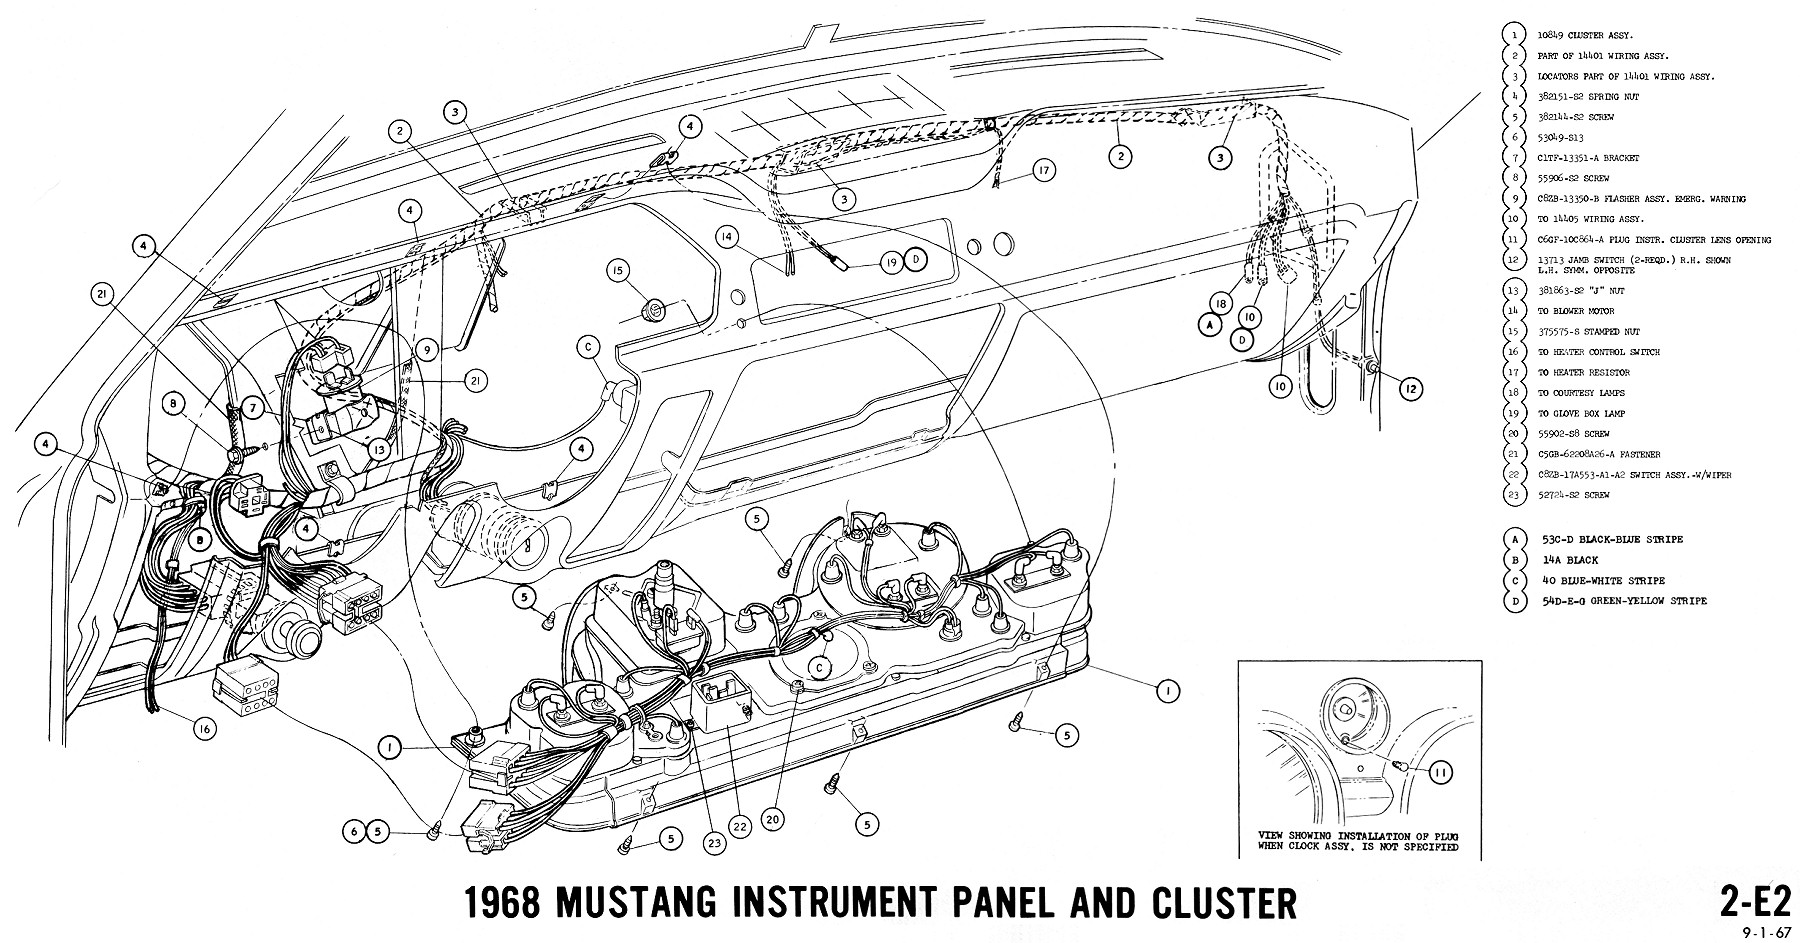 Ford Mustang 289 Engine Diagram besides 1965 Chevrolet Wiring Diagram furthermore 65 Ford Mustang Wiring Diagram moreover 145 together with 67 Camaro Door Diagram. on 1965 mustang wiring diagram